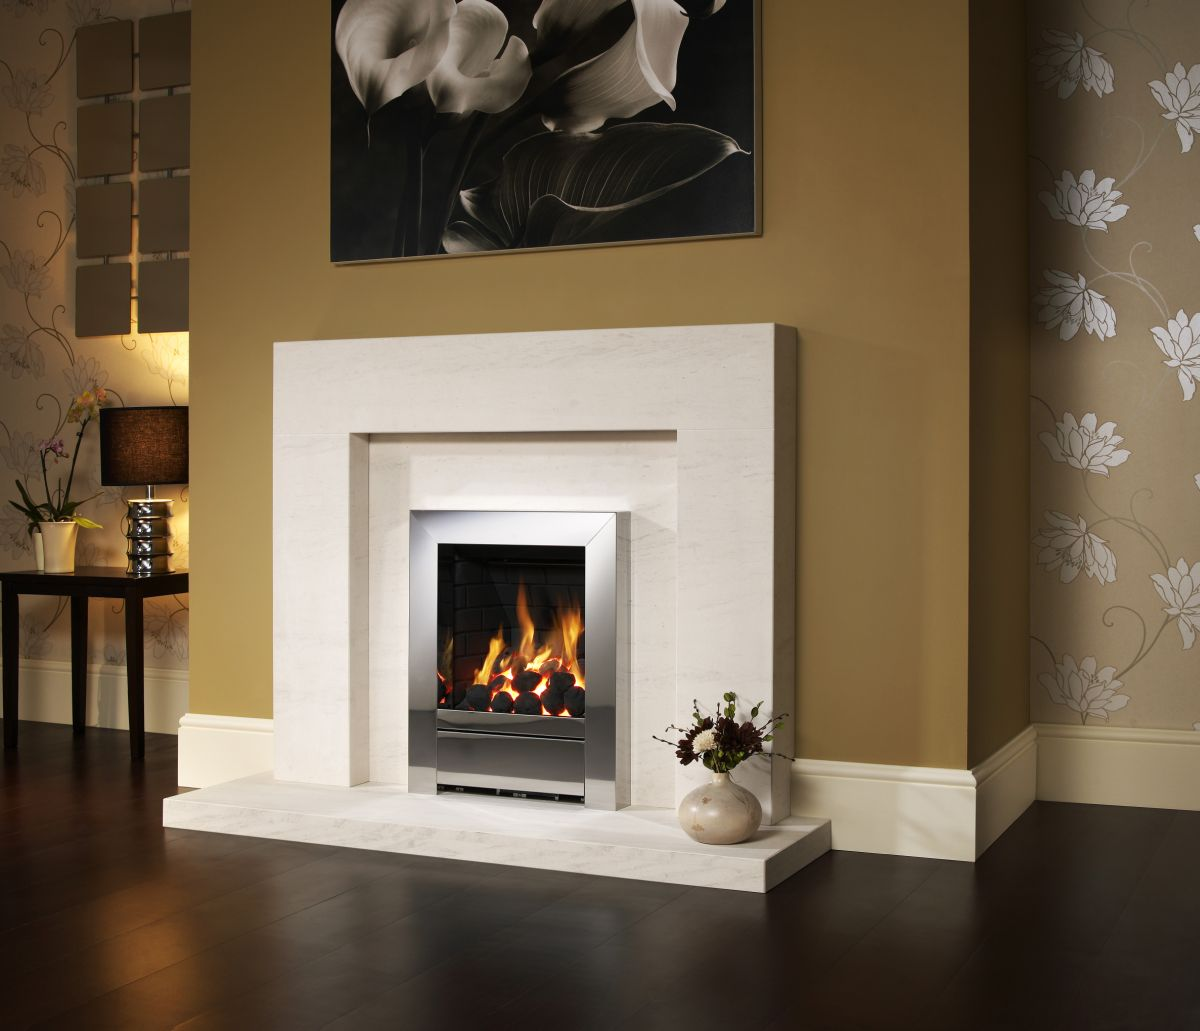 Simple marble surround